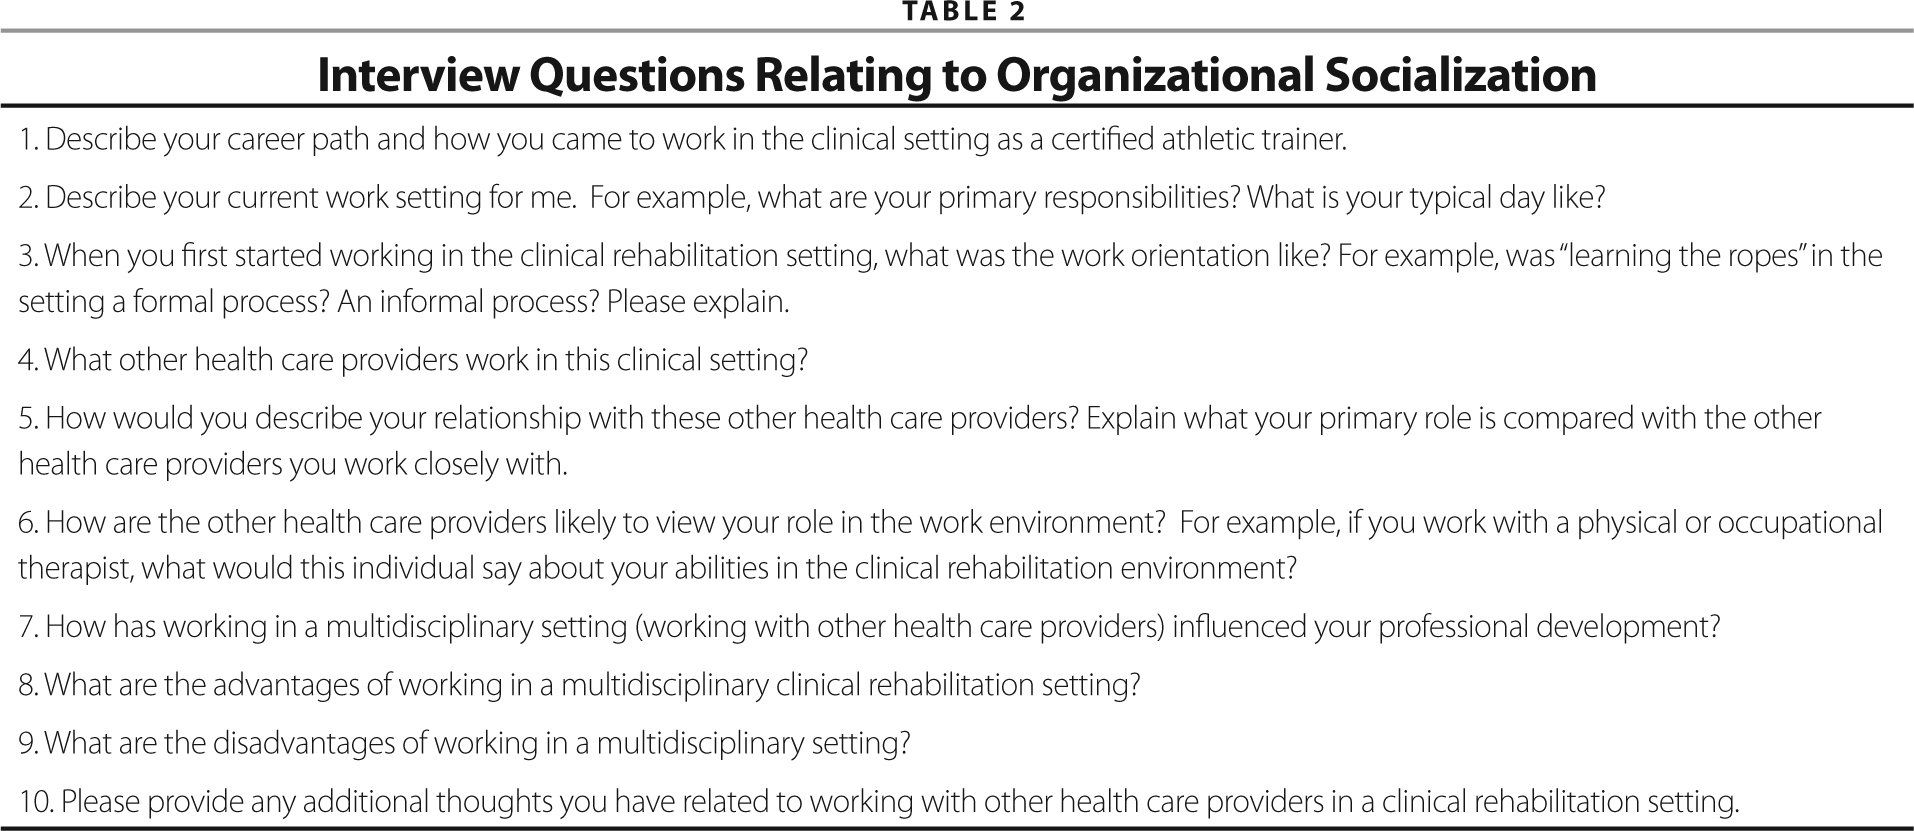 Organizational socialization experiences of athletic trainers data collection and analysis 1betcityfo Choice Image